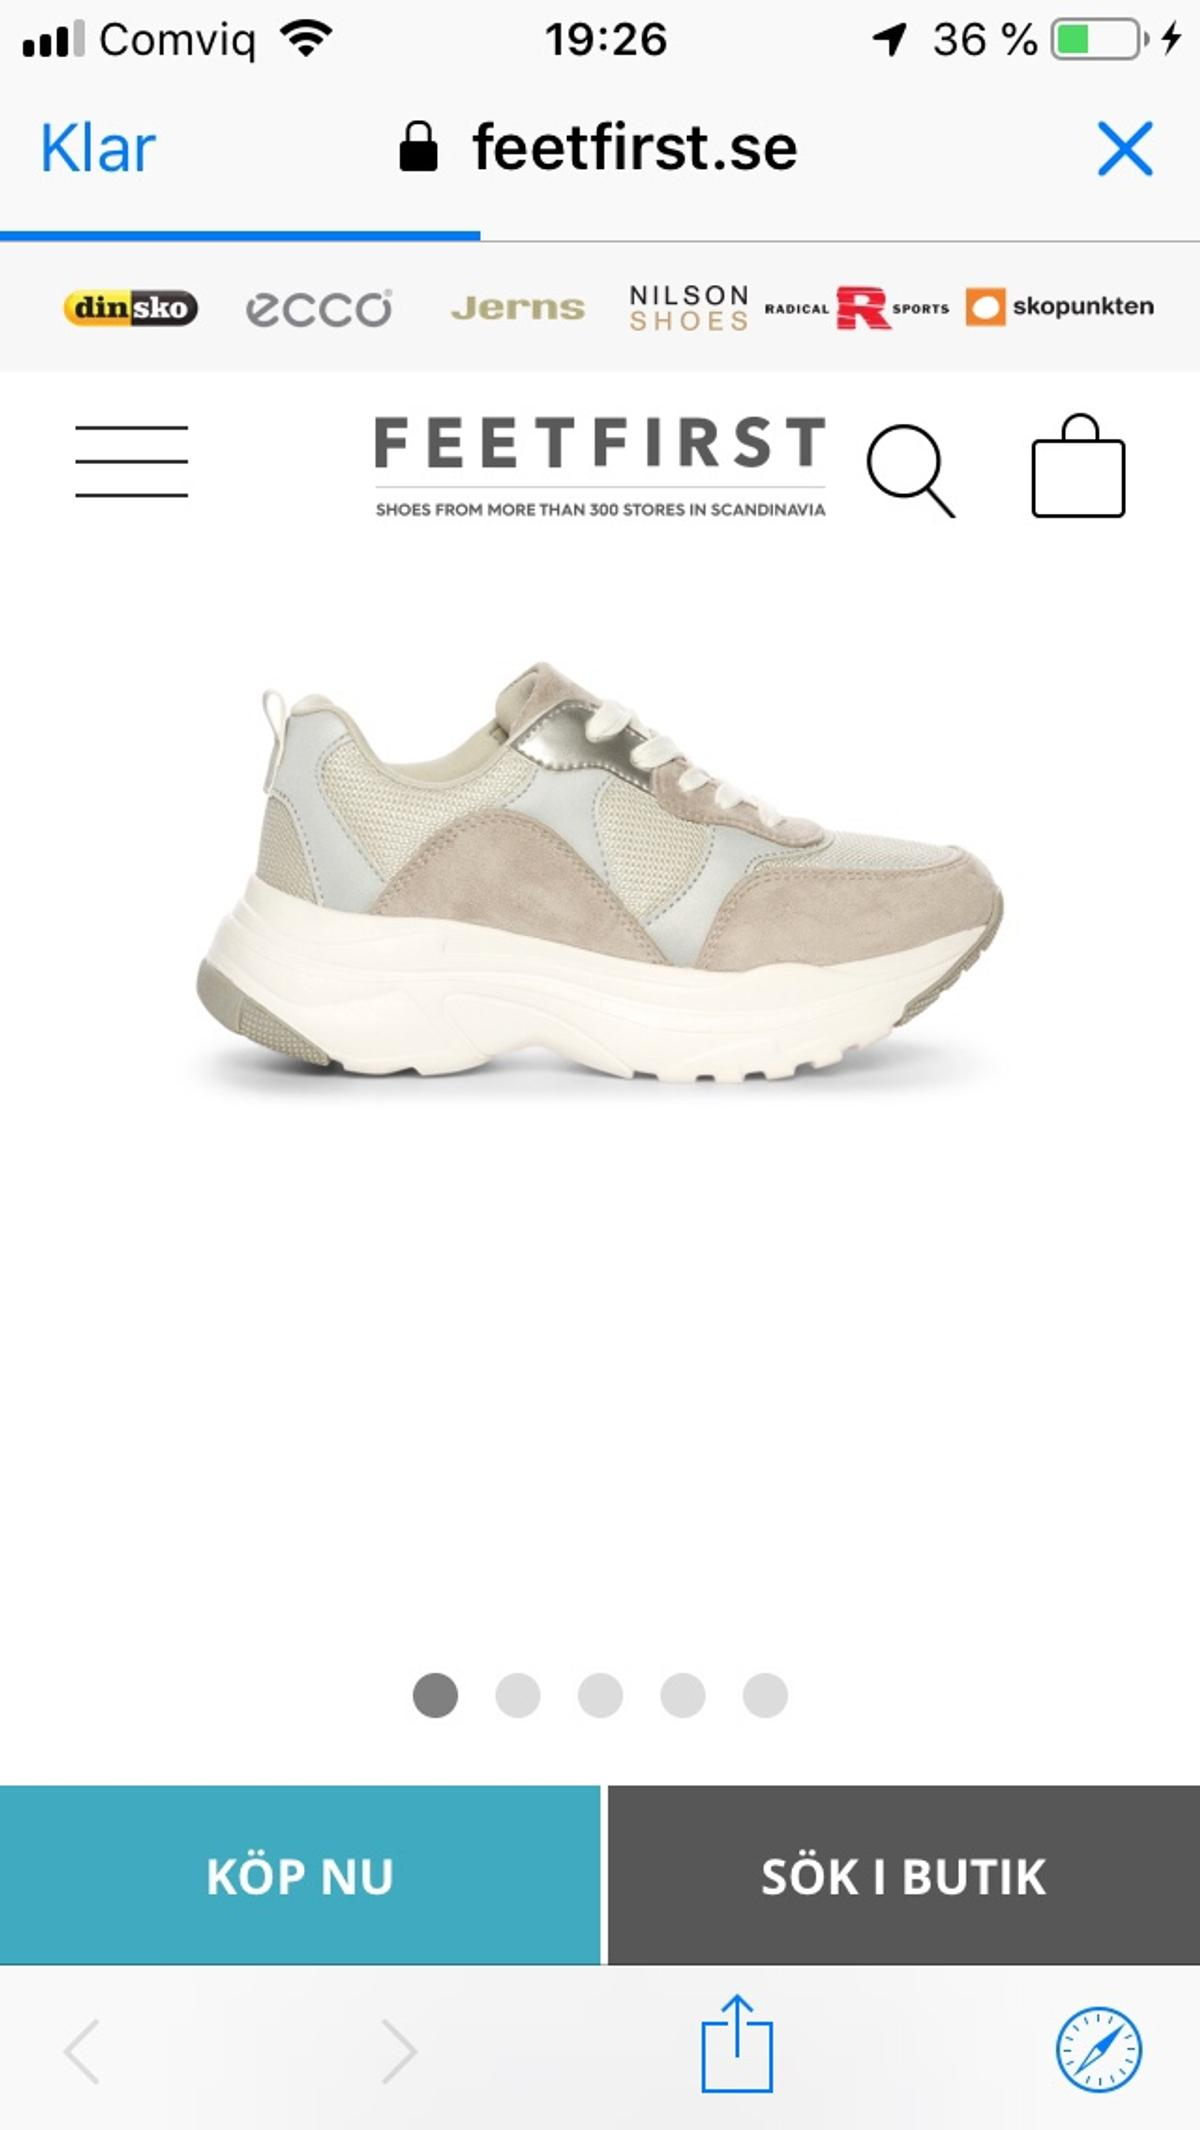 d1561da9c60 Chunky sneakers in 44335 Lerum for SEK 200.00 for sale - Shpock